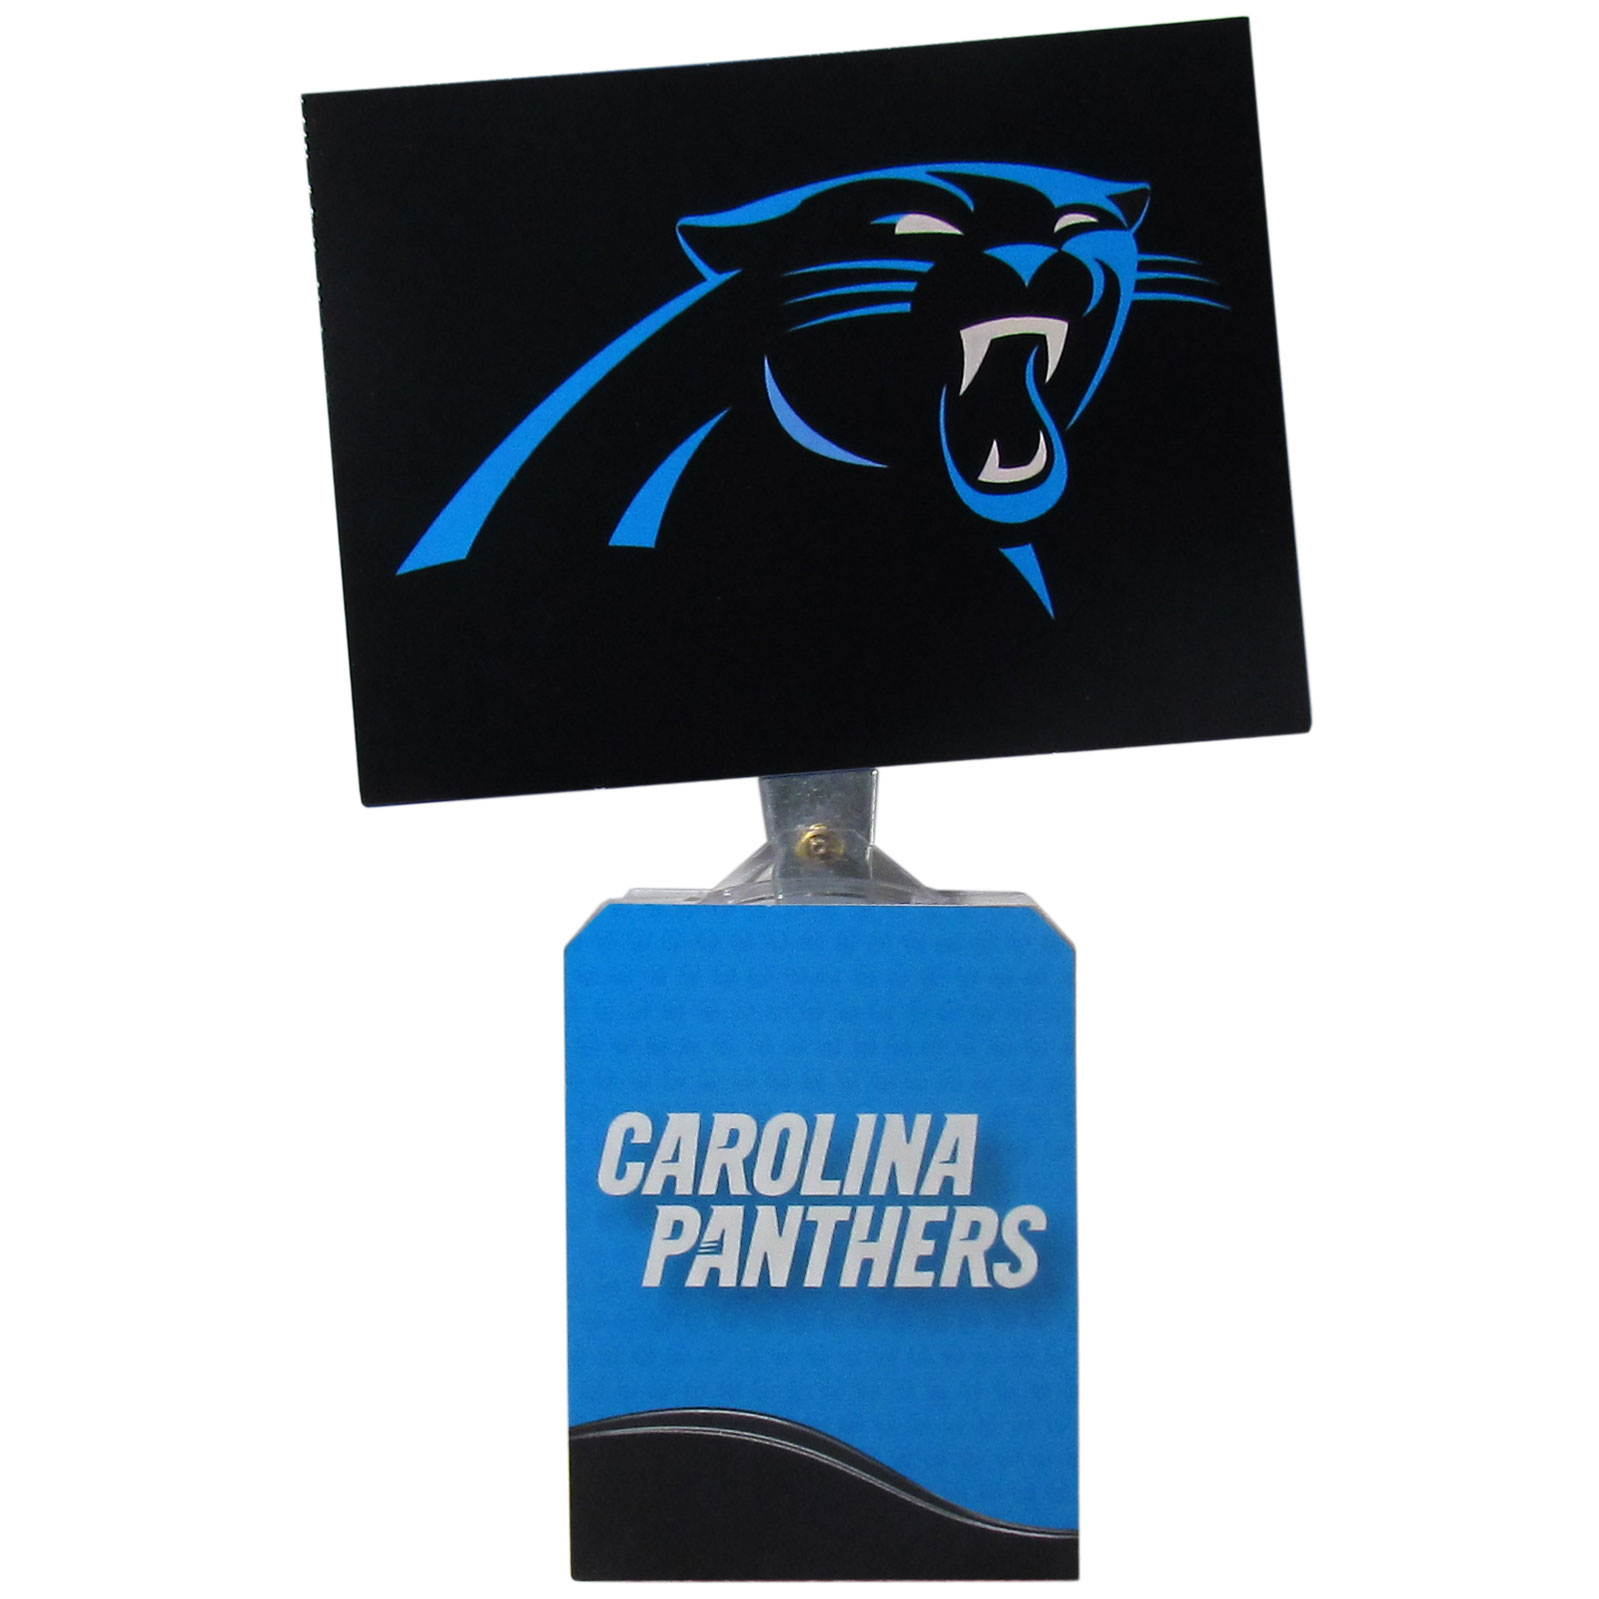 Carolina Panthers Solar Flags - Get pumped up on the way to game with Siskiyou's Chicago Bears Carolina Panthers Solar Flag that mounts to your dashboard or window. The in-motion solar flag also doubles as decoration for your tailgate or homegate! The base of the flag is 3 inches tall and the flag is 4 inches making the entire in-motion solar flag stand at 7 inches tall. Keep your spirit moving with your favorite team's Solar Flag.